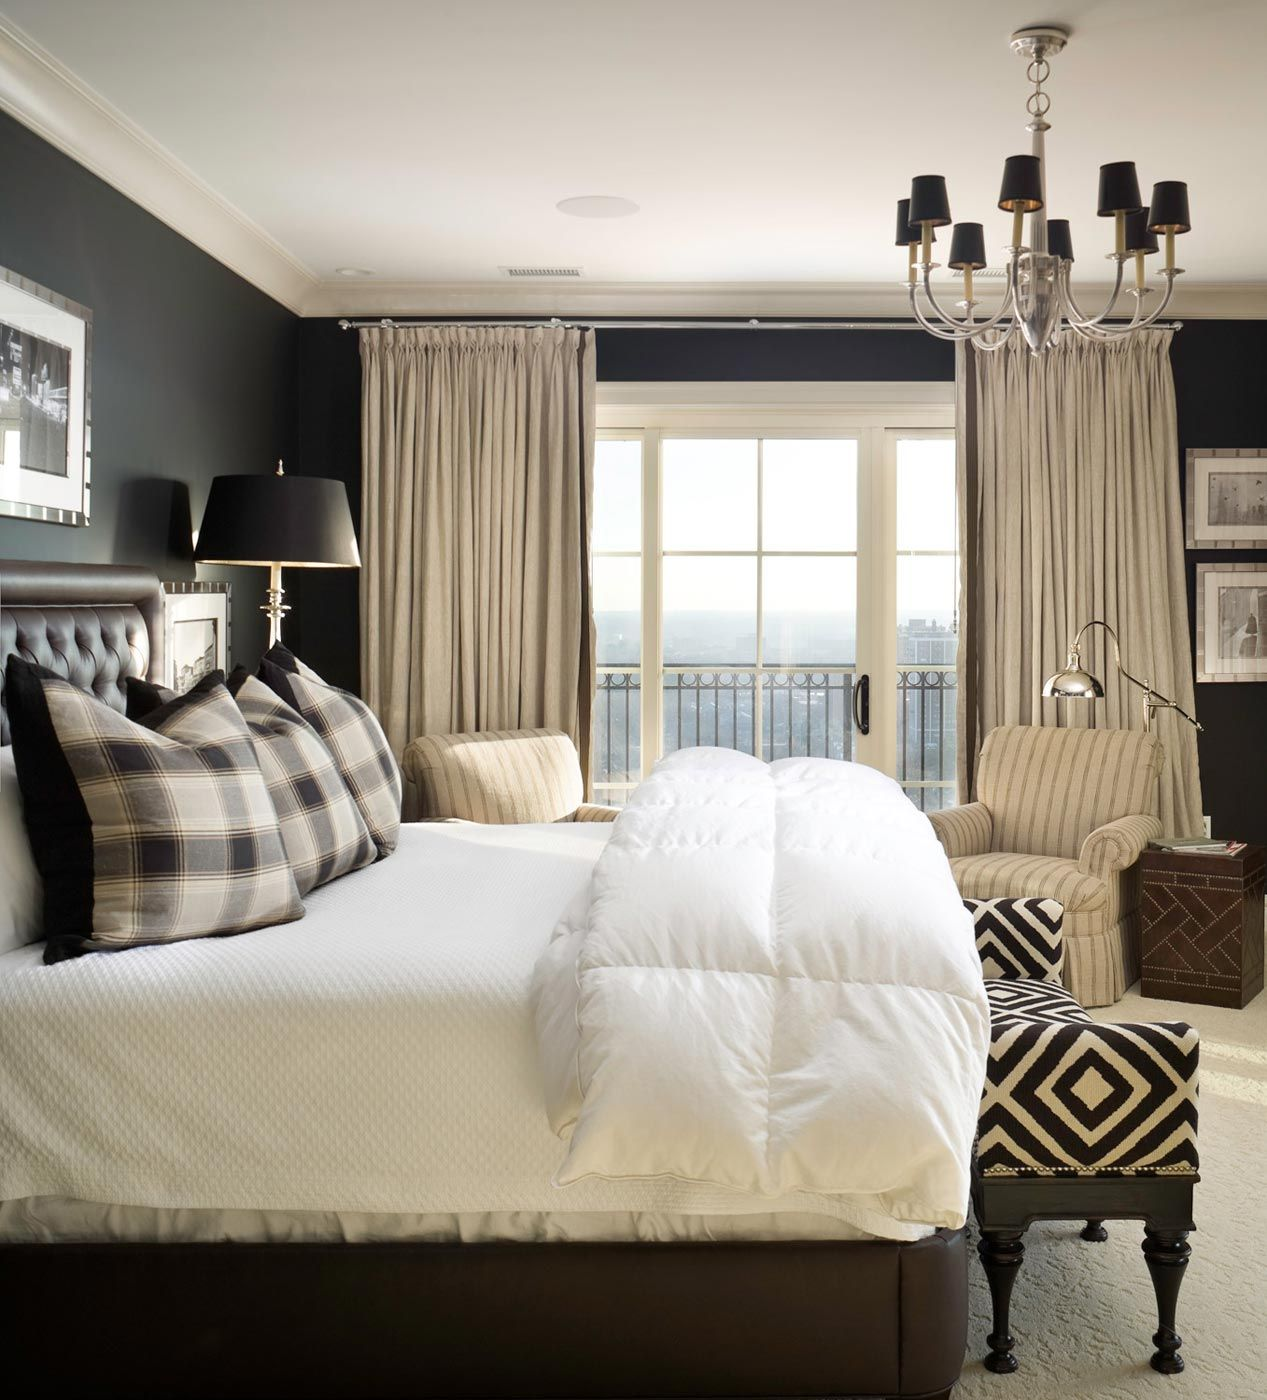 Bedroom With Black Walls White Bedding And Off White Curtains